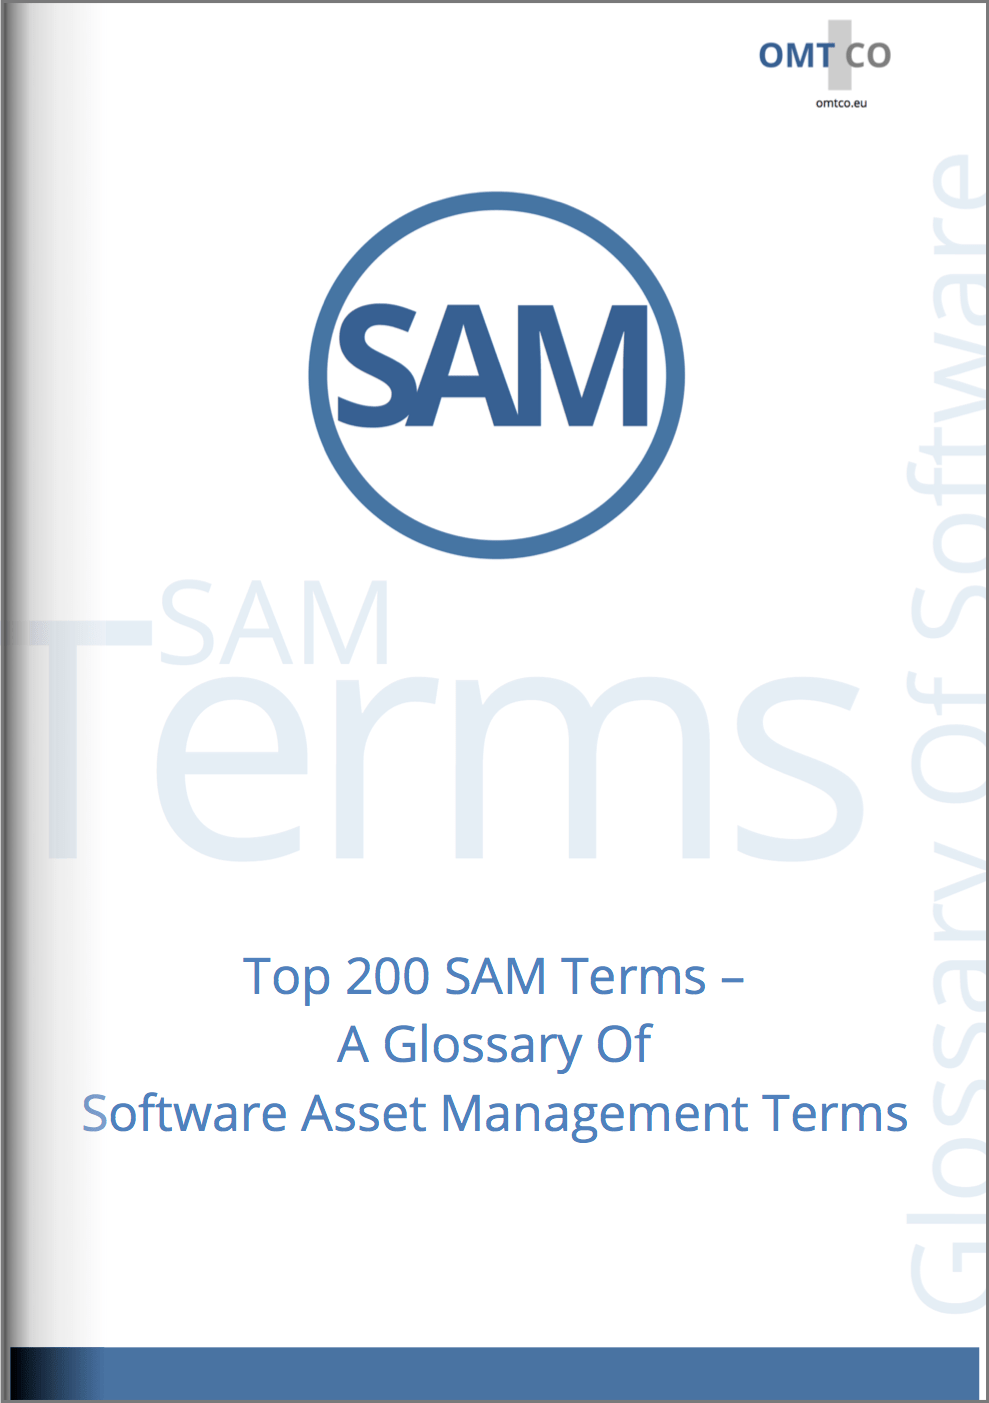 Top 200 SAM Terms  A Glossary Of Software Asset Management And Licensing Terms